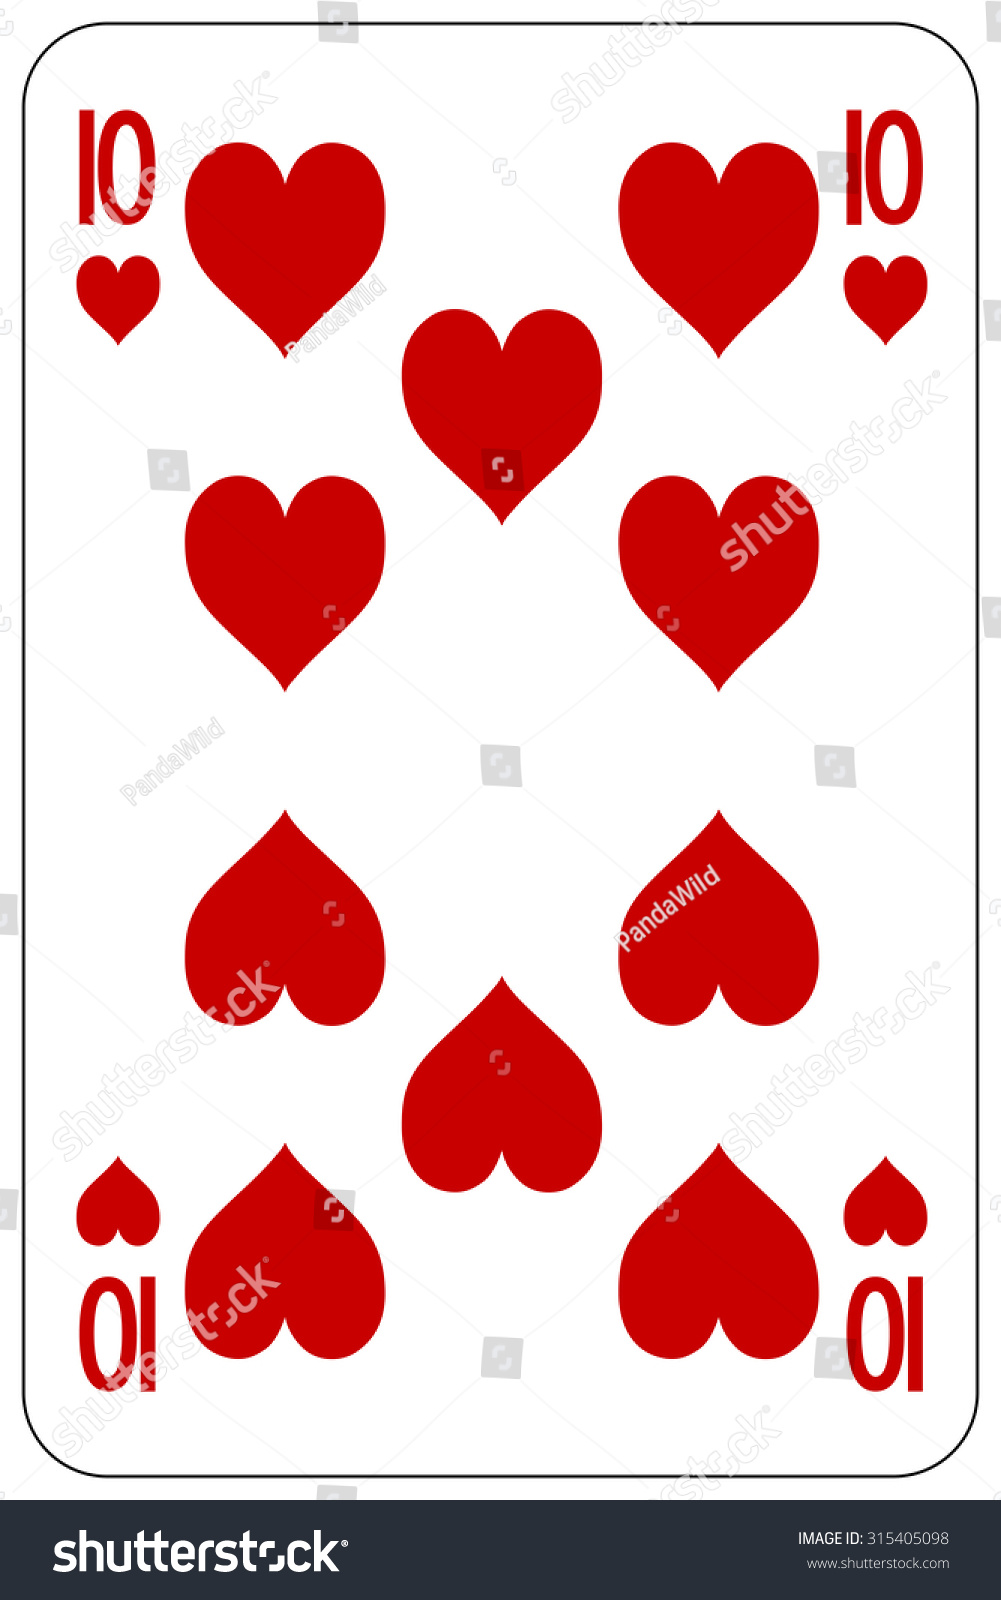 how to play hearts cards